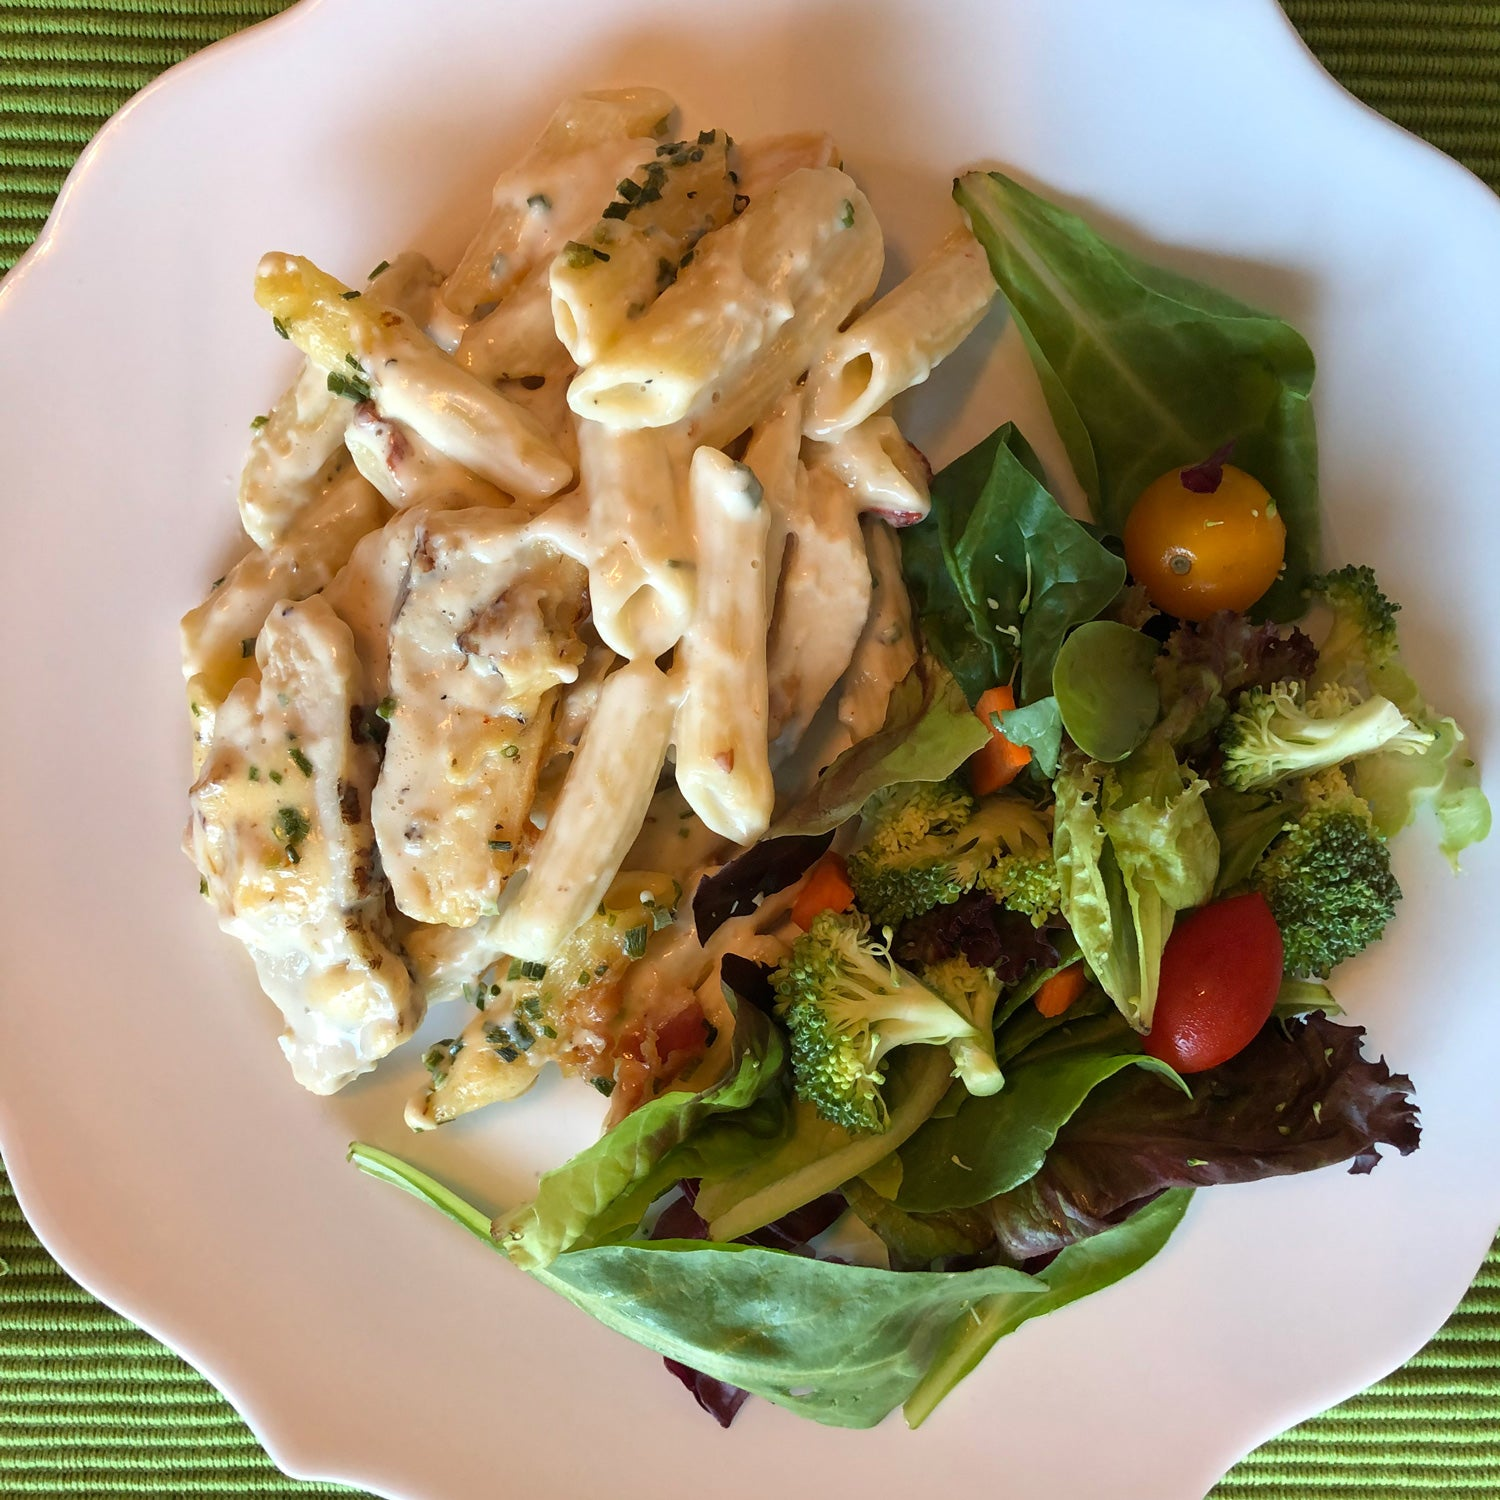 Gail's Grilled Chicken & Chipotle Penne Pasta